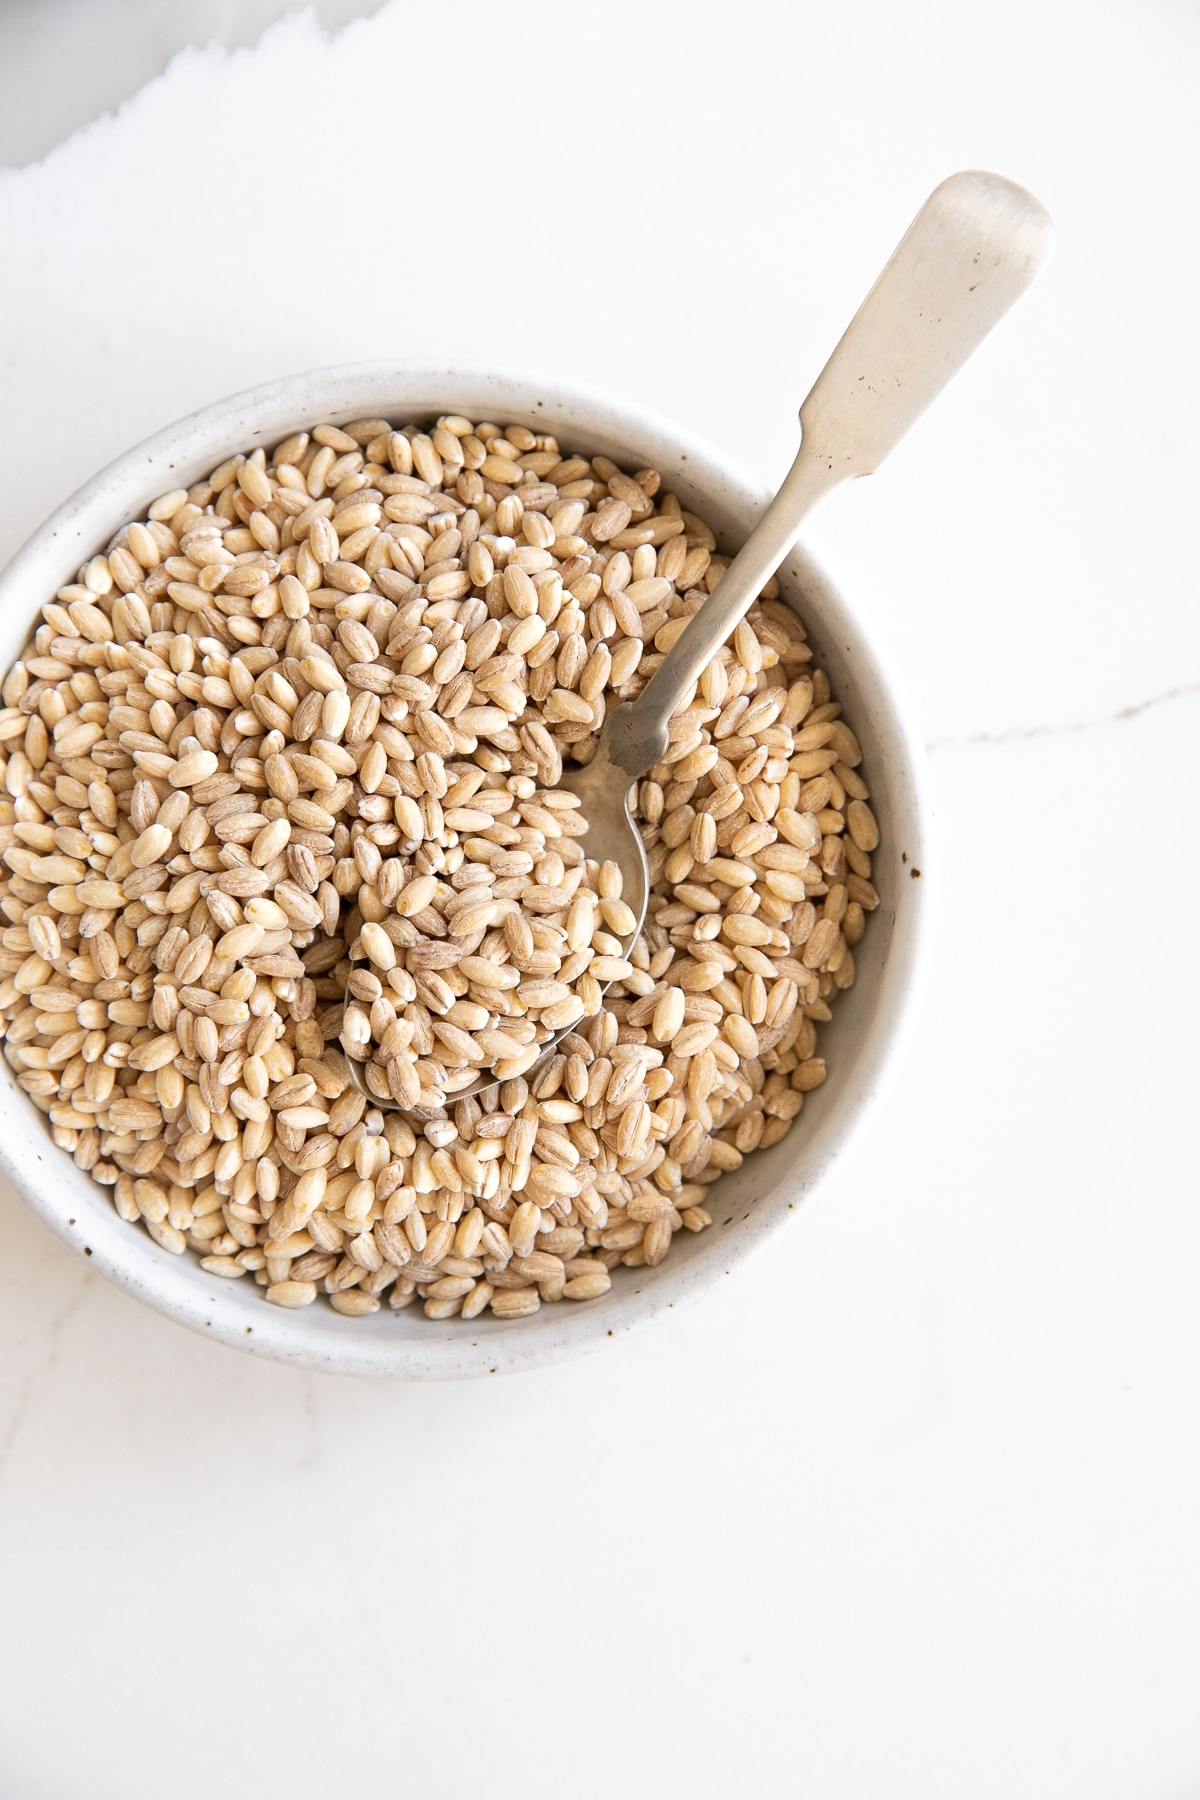 Overhead image of a small white bowl filled with pearl barley.